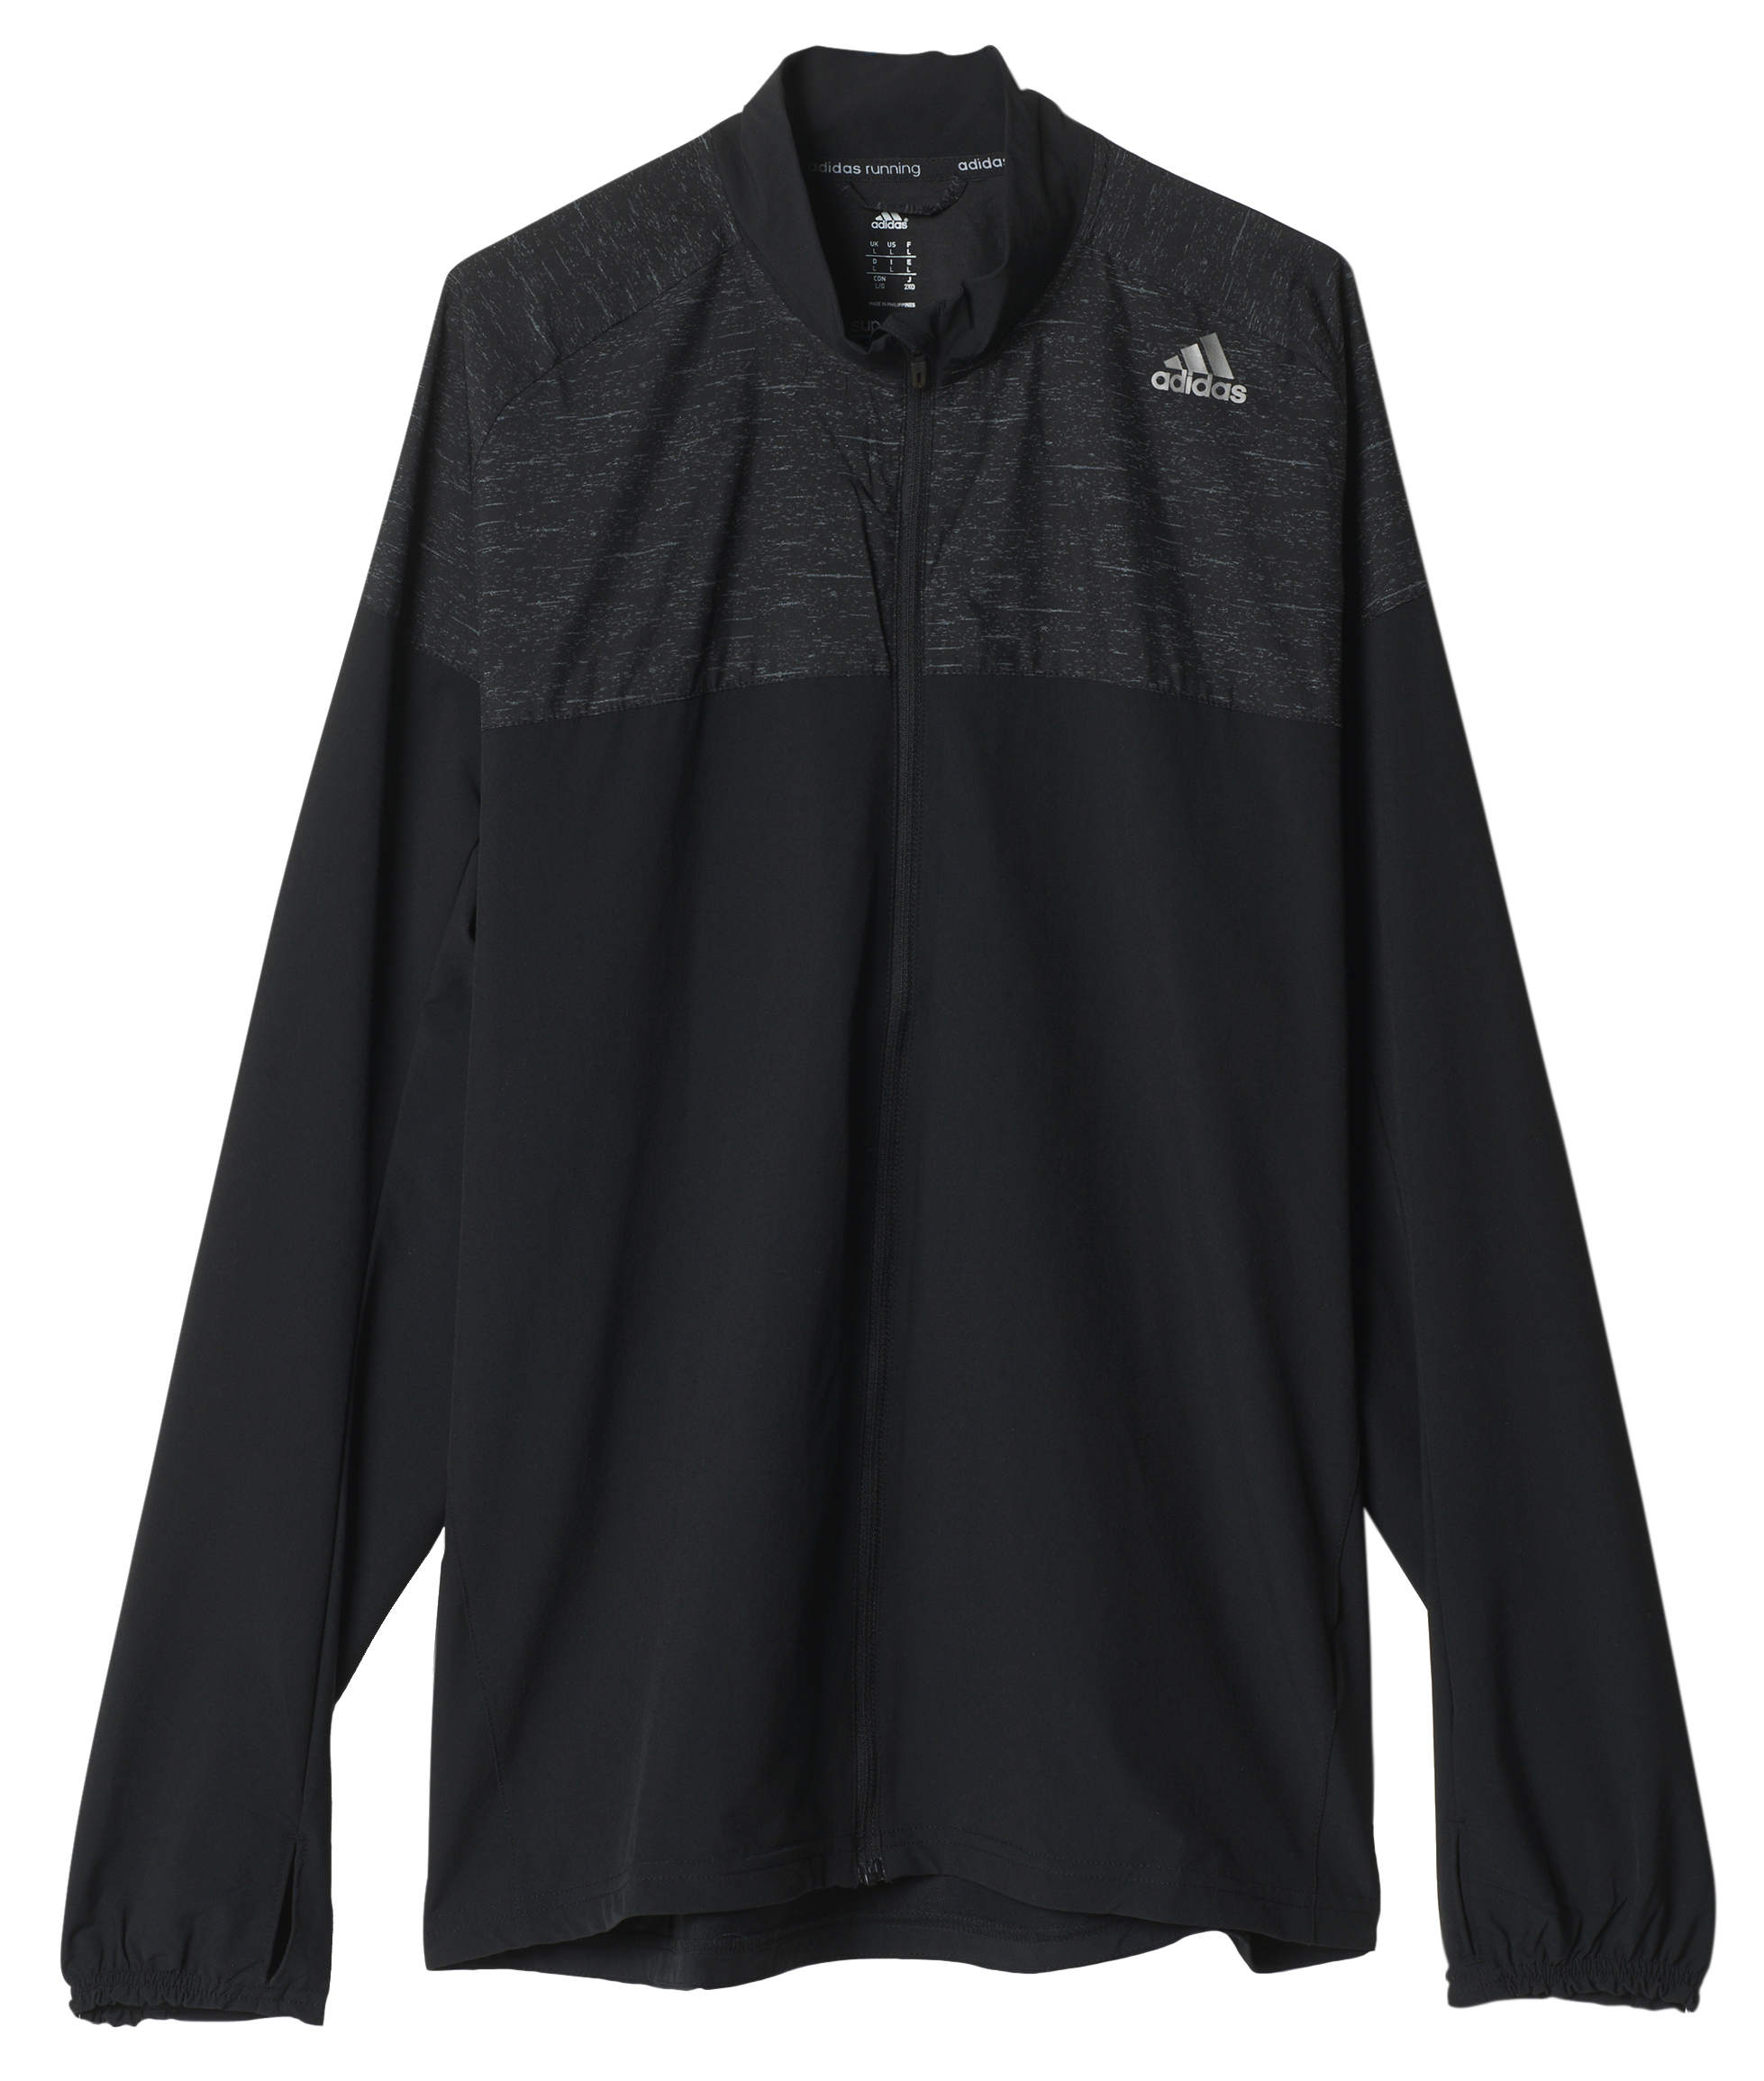 official new authentic huge sale Adidas Supernova Storm Jacket - Men's | MEC